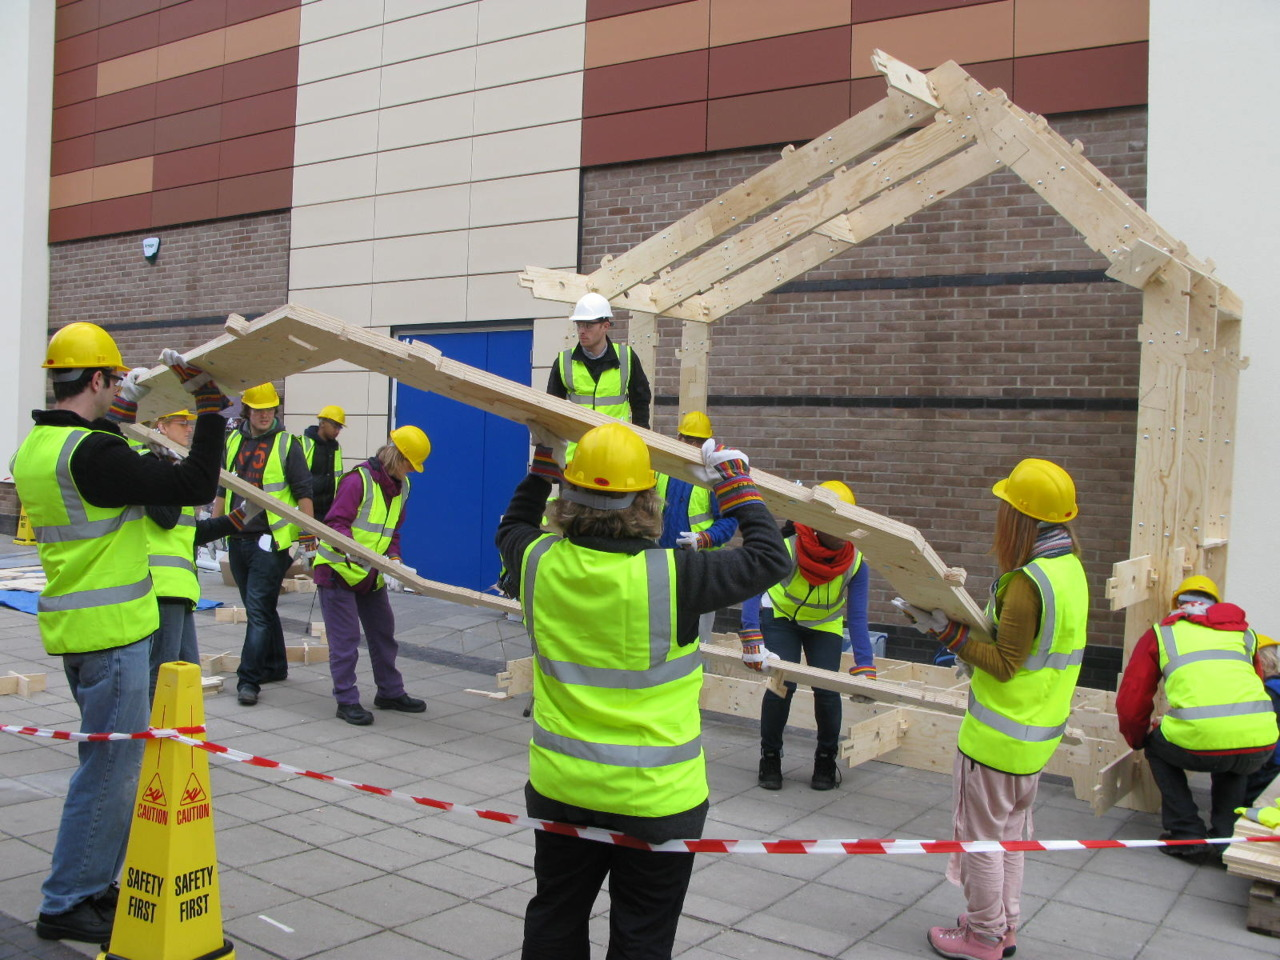 Students of Anglia Ruskin University assembling a WikiHouse in Chelmsford town centre.